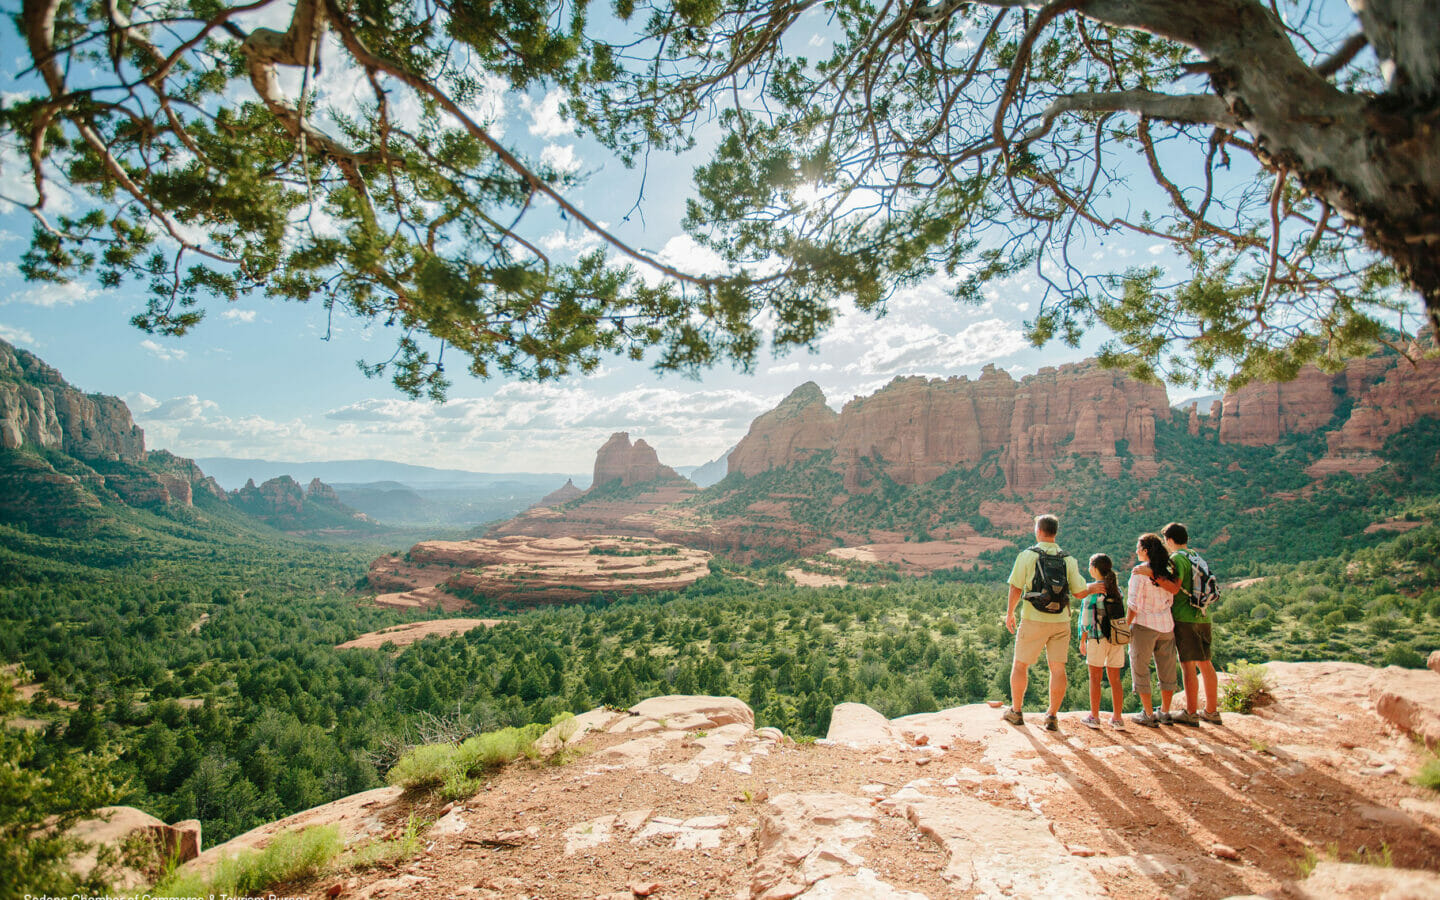 A family of hikers looking out over a vista in Sedona